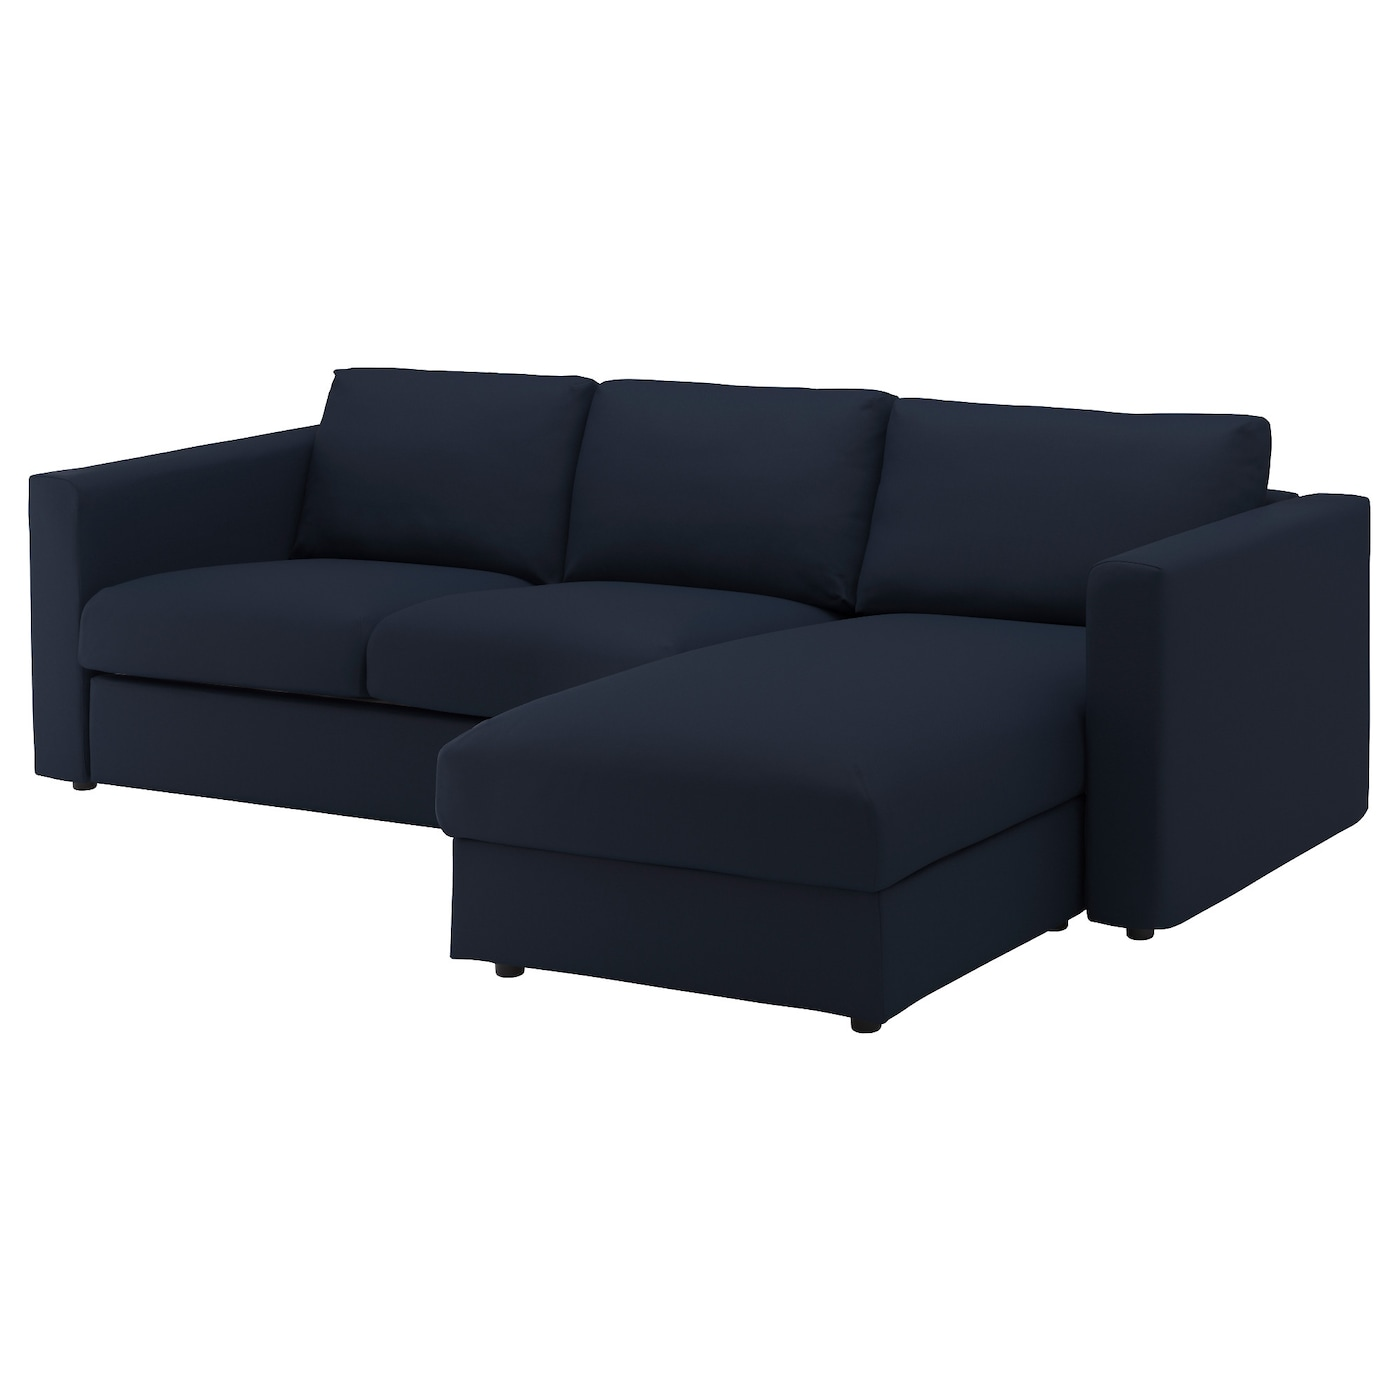 Vimle 3 seat sofa with chaise longue gr sbo black blue ikea for 3 seater couch with chaise